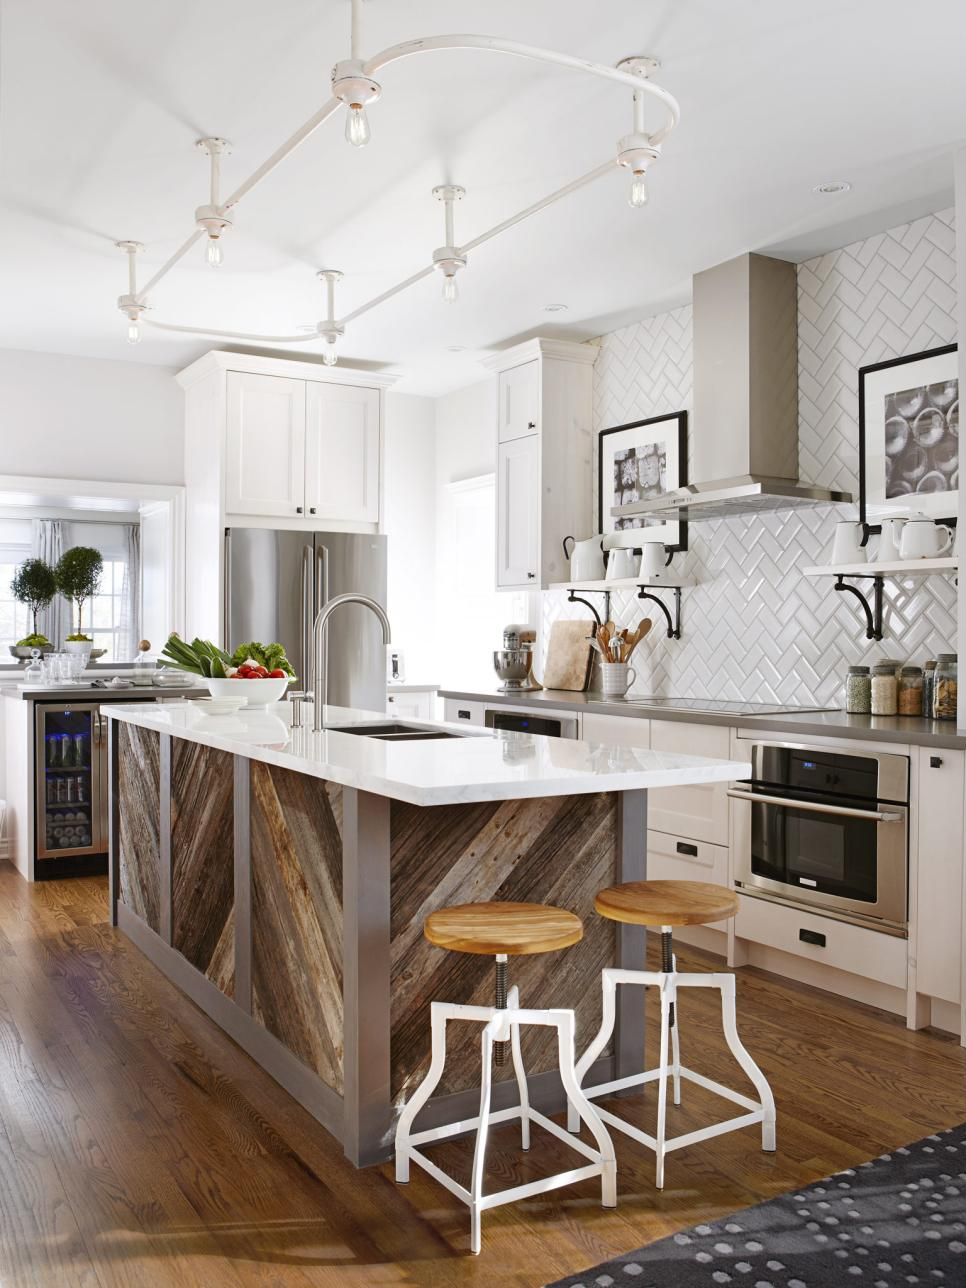 lovely Pictures Of Kitchen Islands #10: HGTV.com